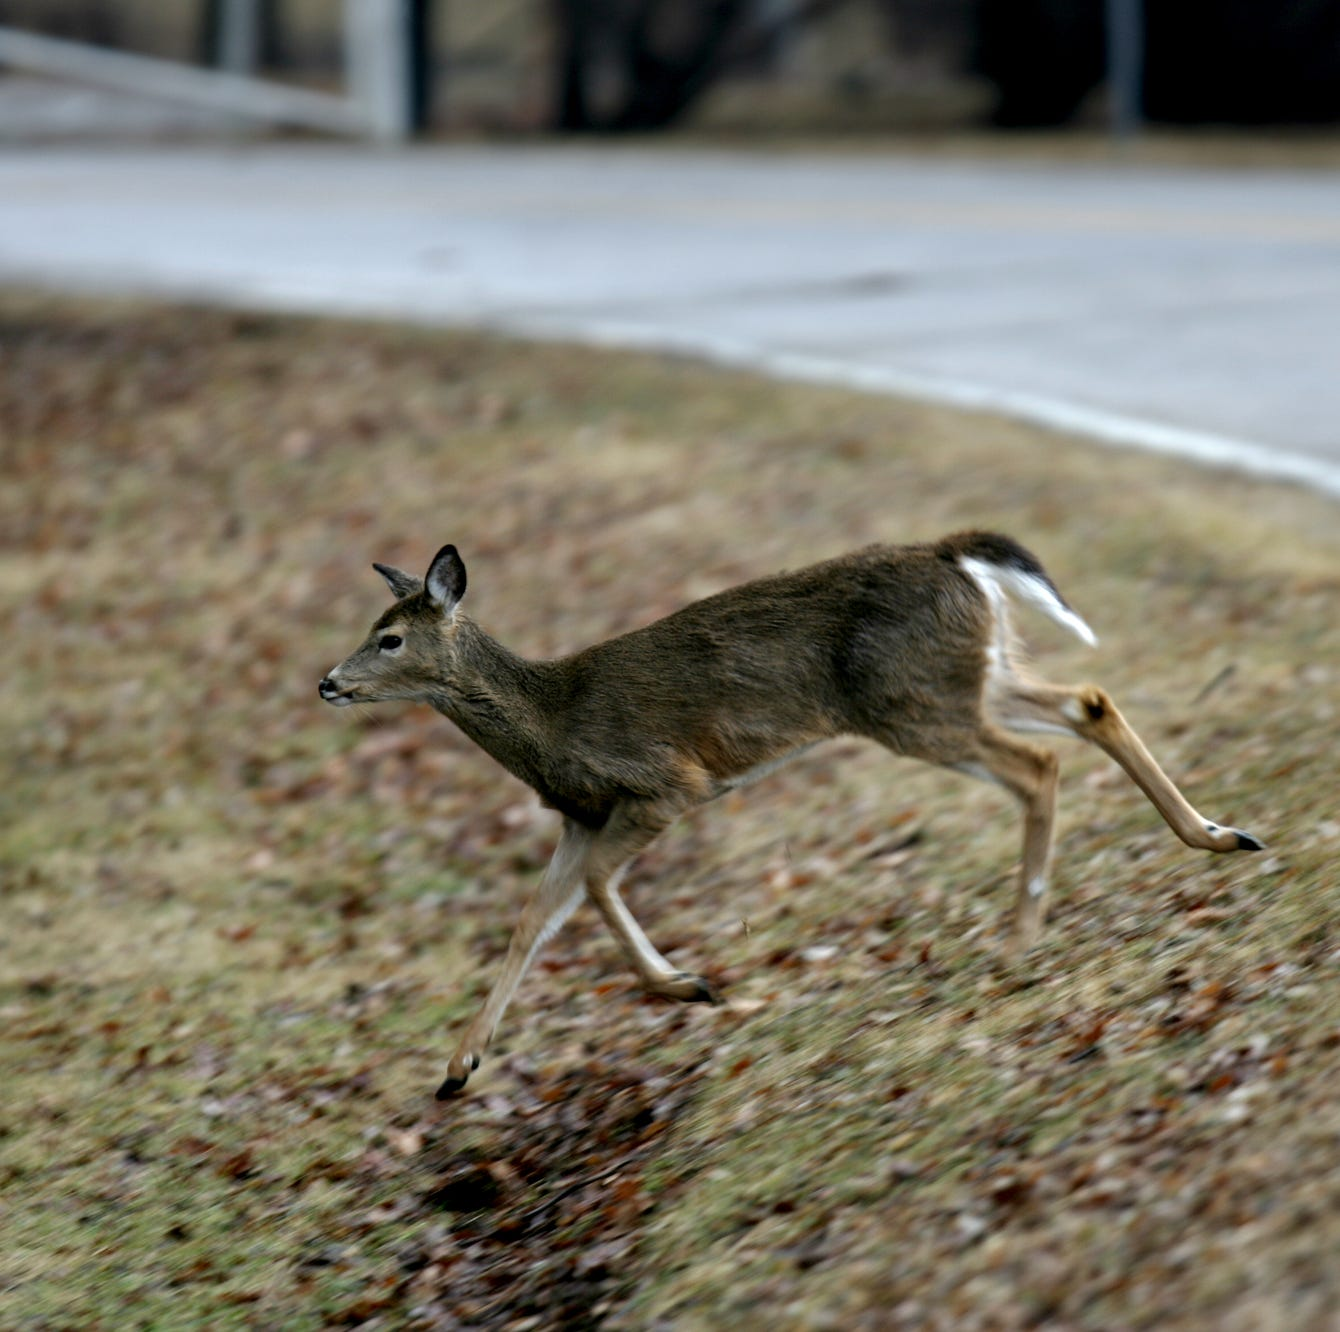 Commission says no to sharp shooting deer, proposes bow hunt